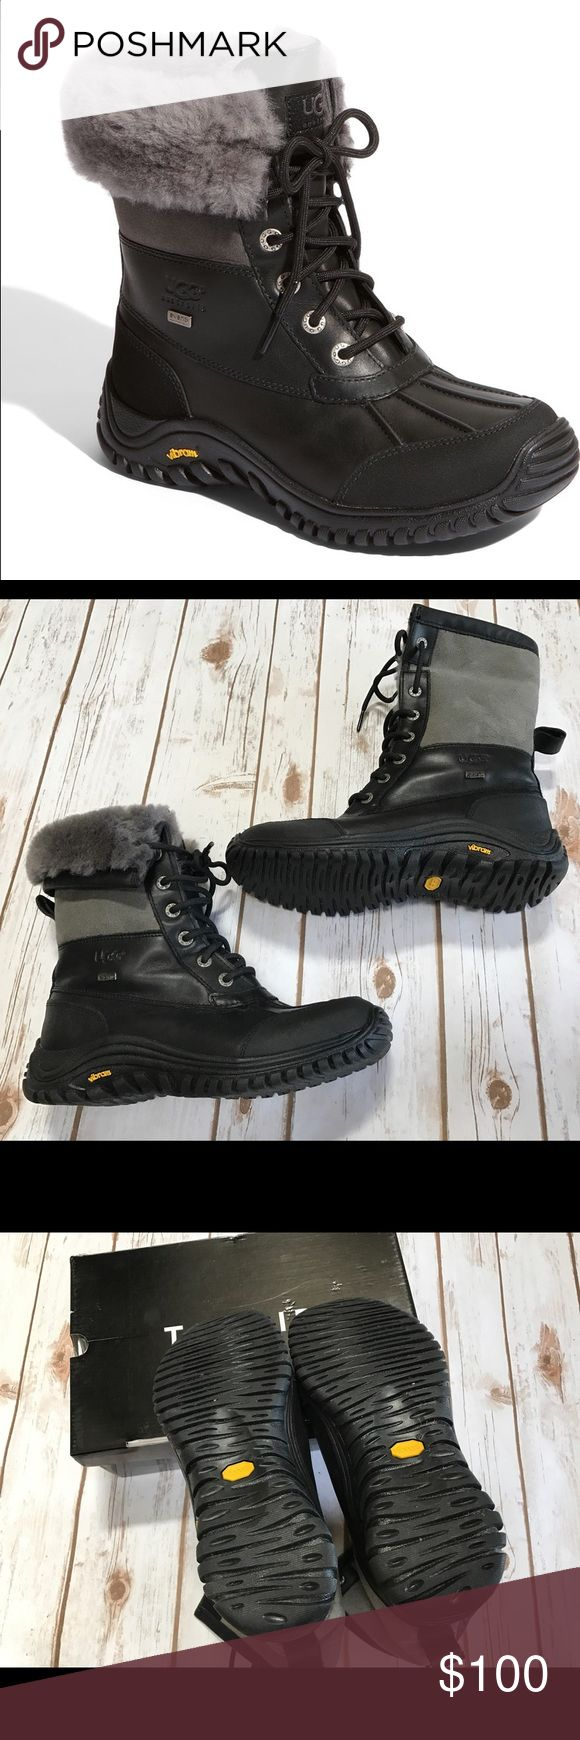 Ugg Adirondack II Waterproof Boot size 8 Worn maybe two times? No box. Can be worn with the tops flipped down (see last picture) or laced all the way up. UGG Shoes Winter & Rain Boots